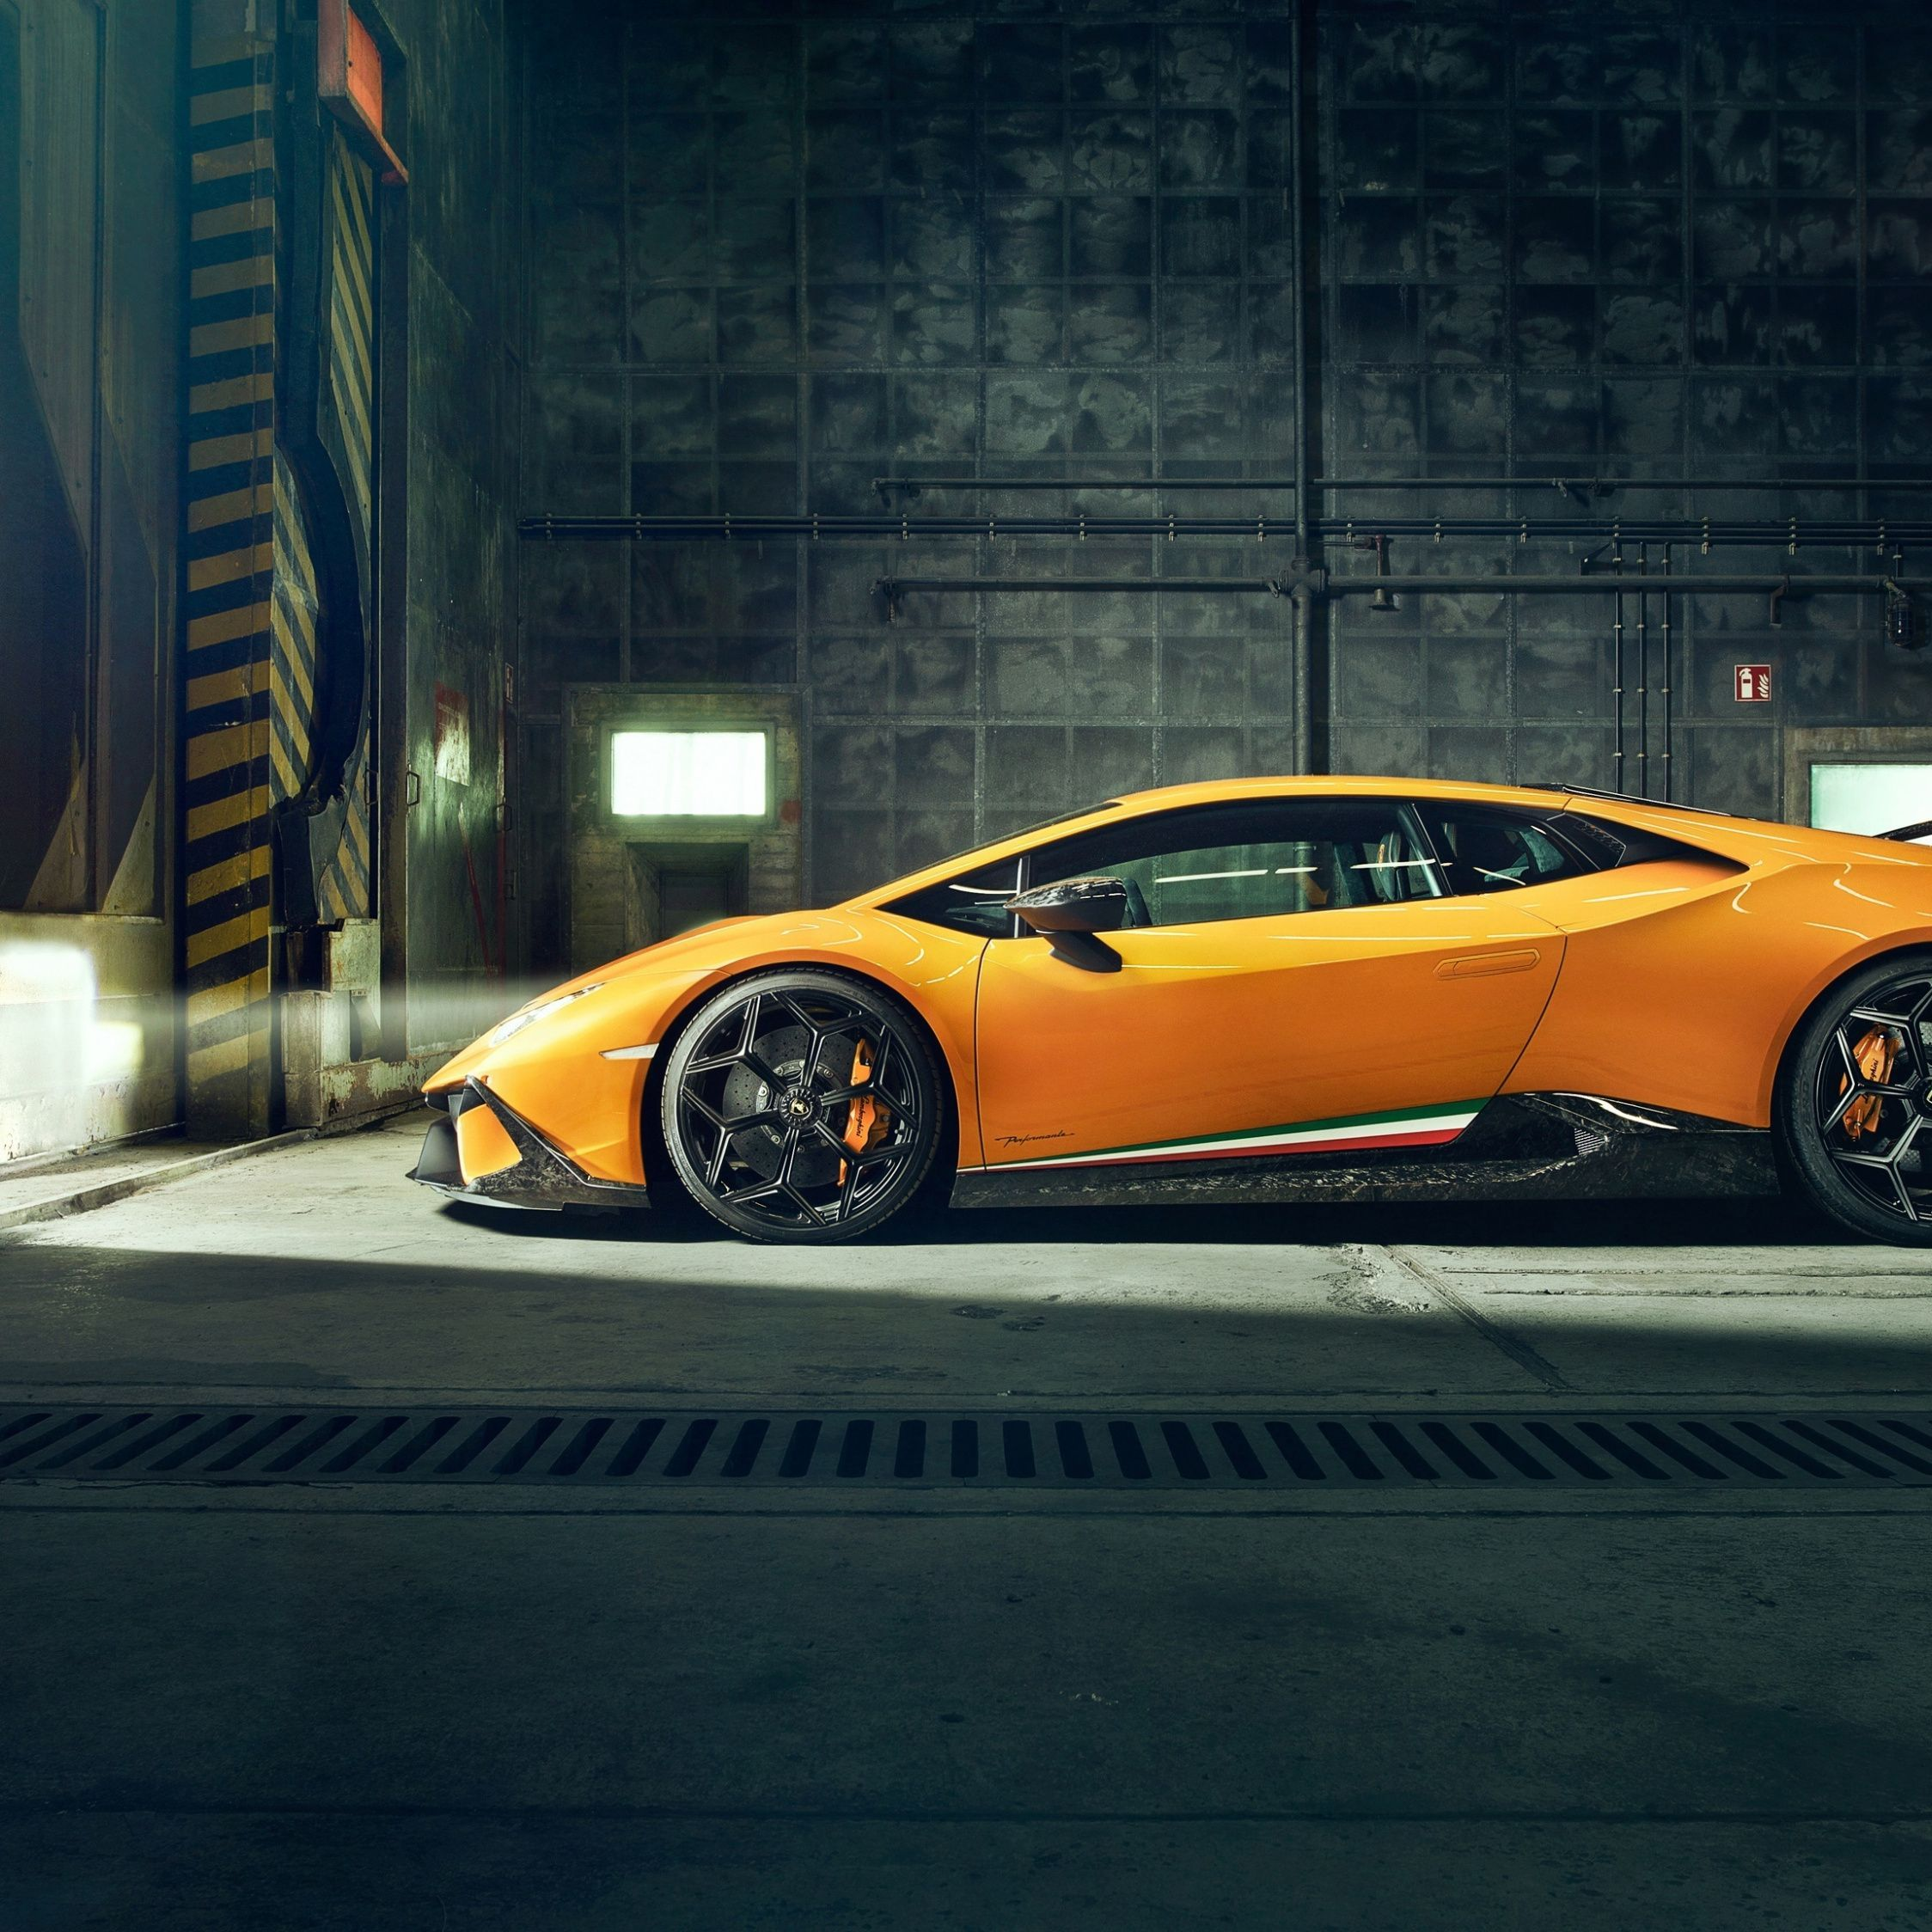 2017 Lamborghini Huracan Performante 4k 3 Wallpapers #lamborghinihuracan 2017 Lamborghini Huracan Performante 4k 3 Wallpapers #lamborghinihuracan